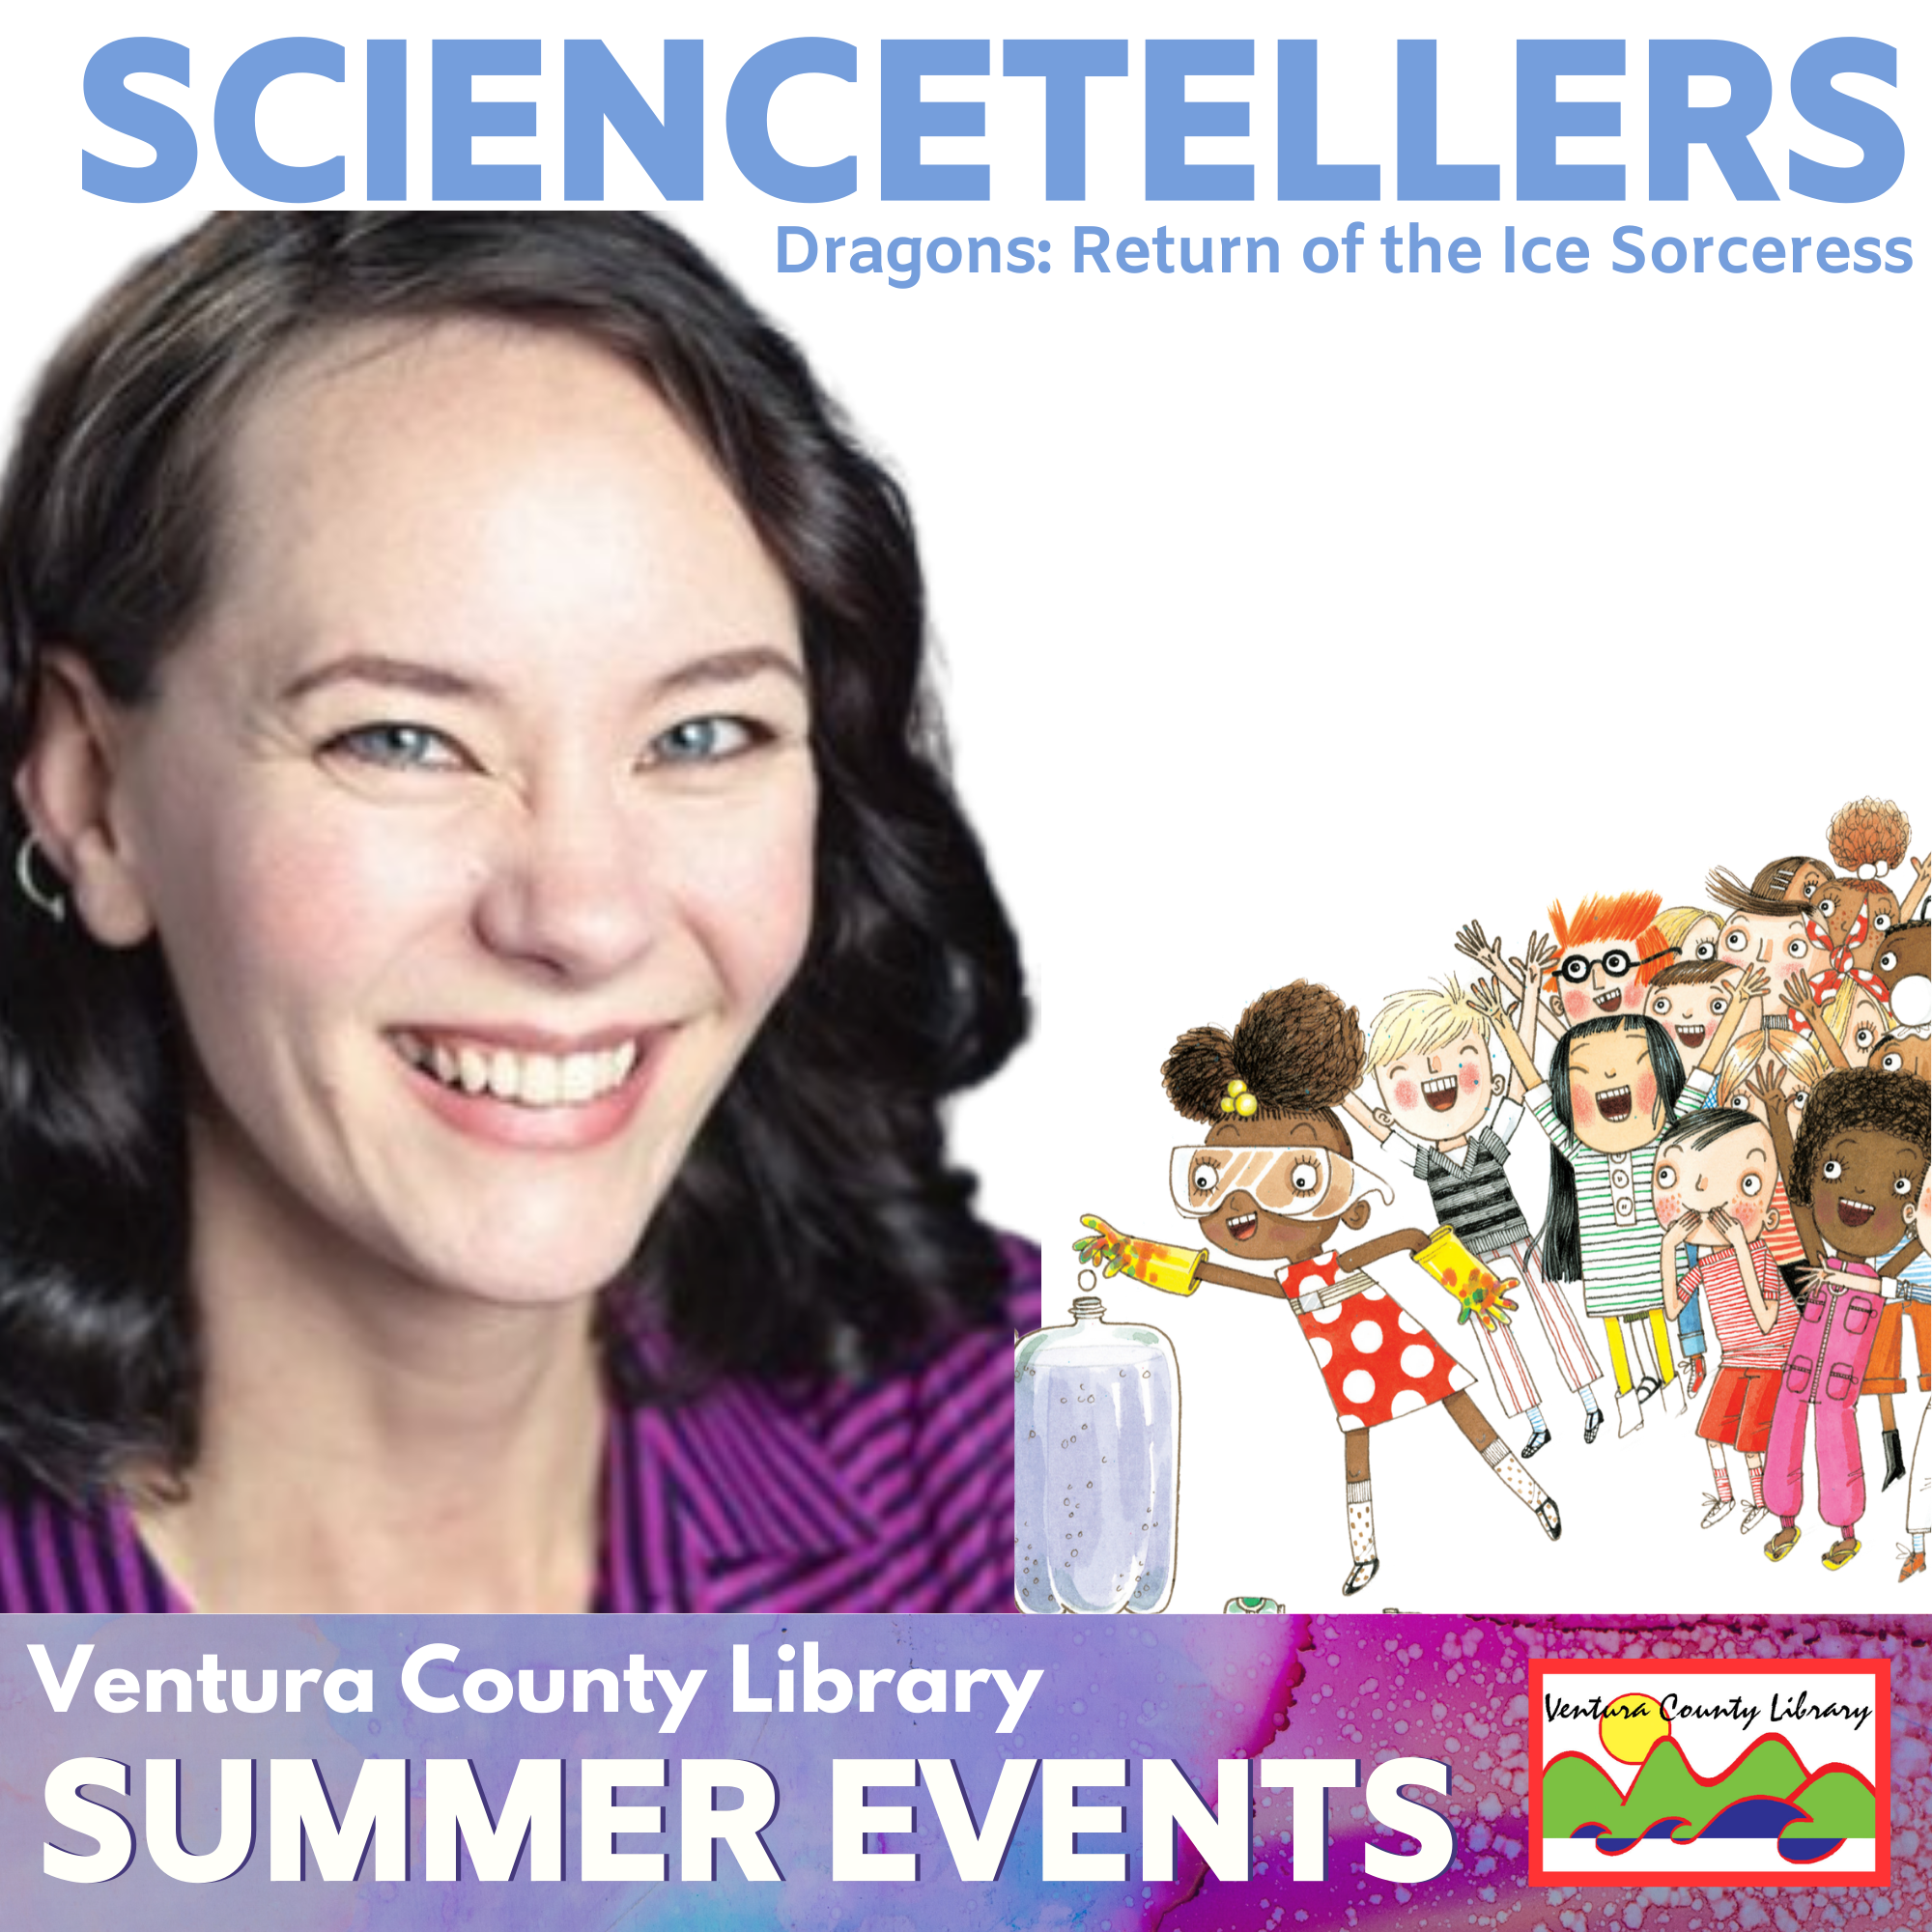 smiling woman next to an illustrated crowd of children. text displayed is title of the event.